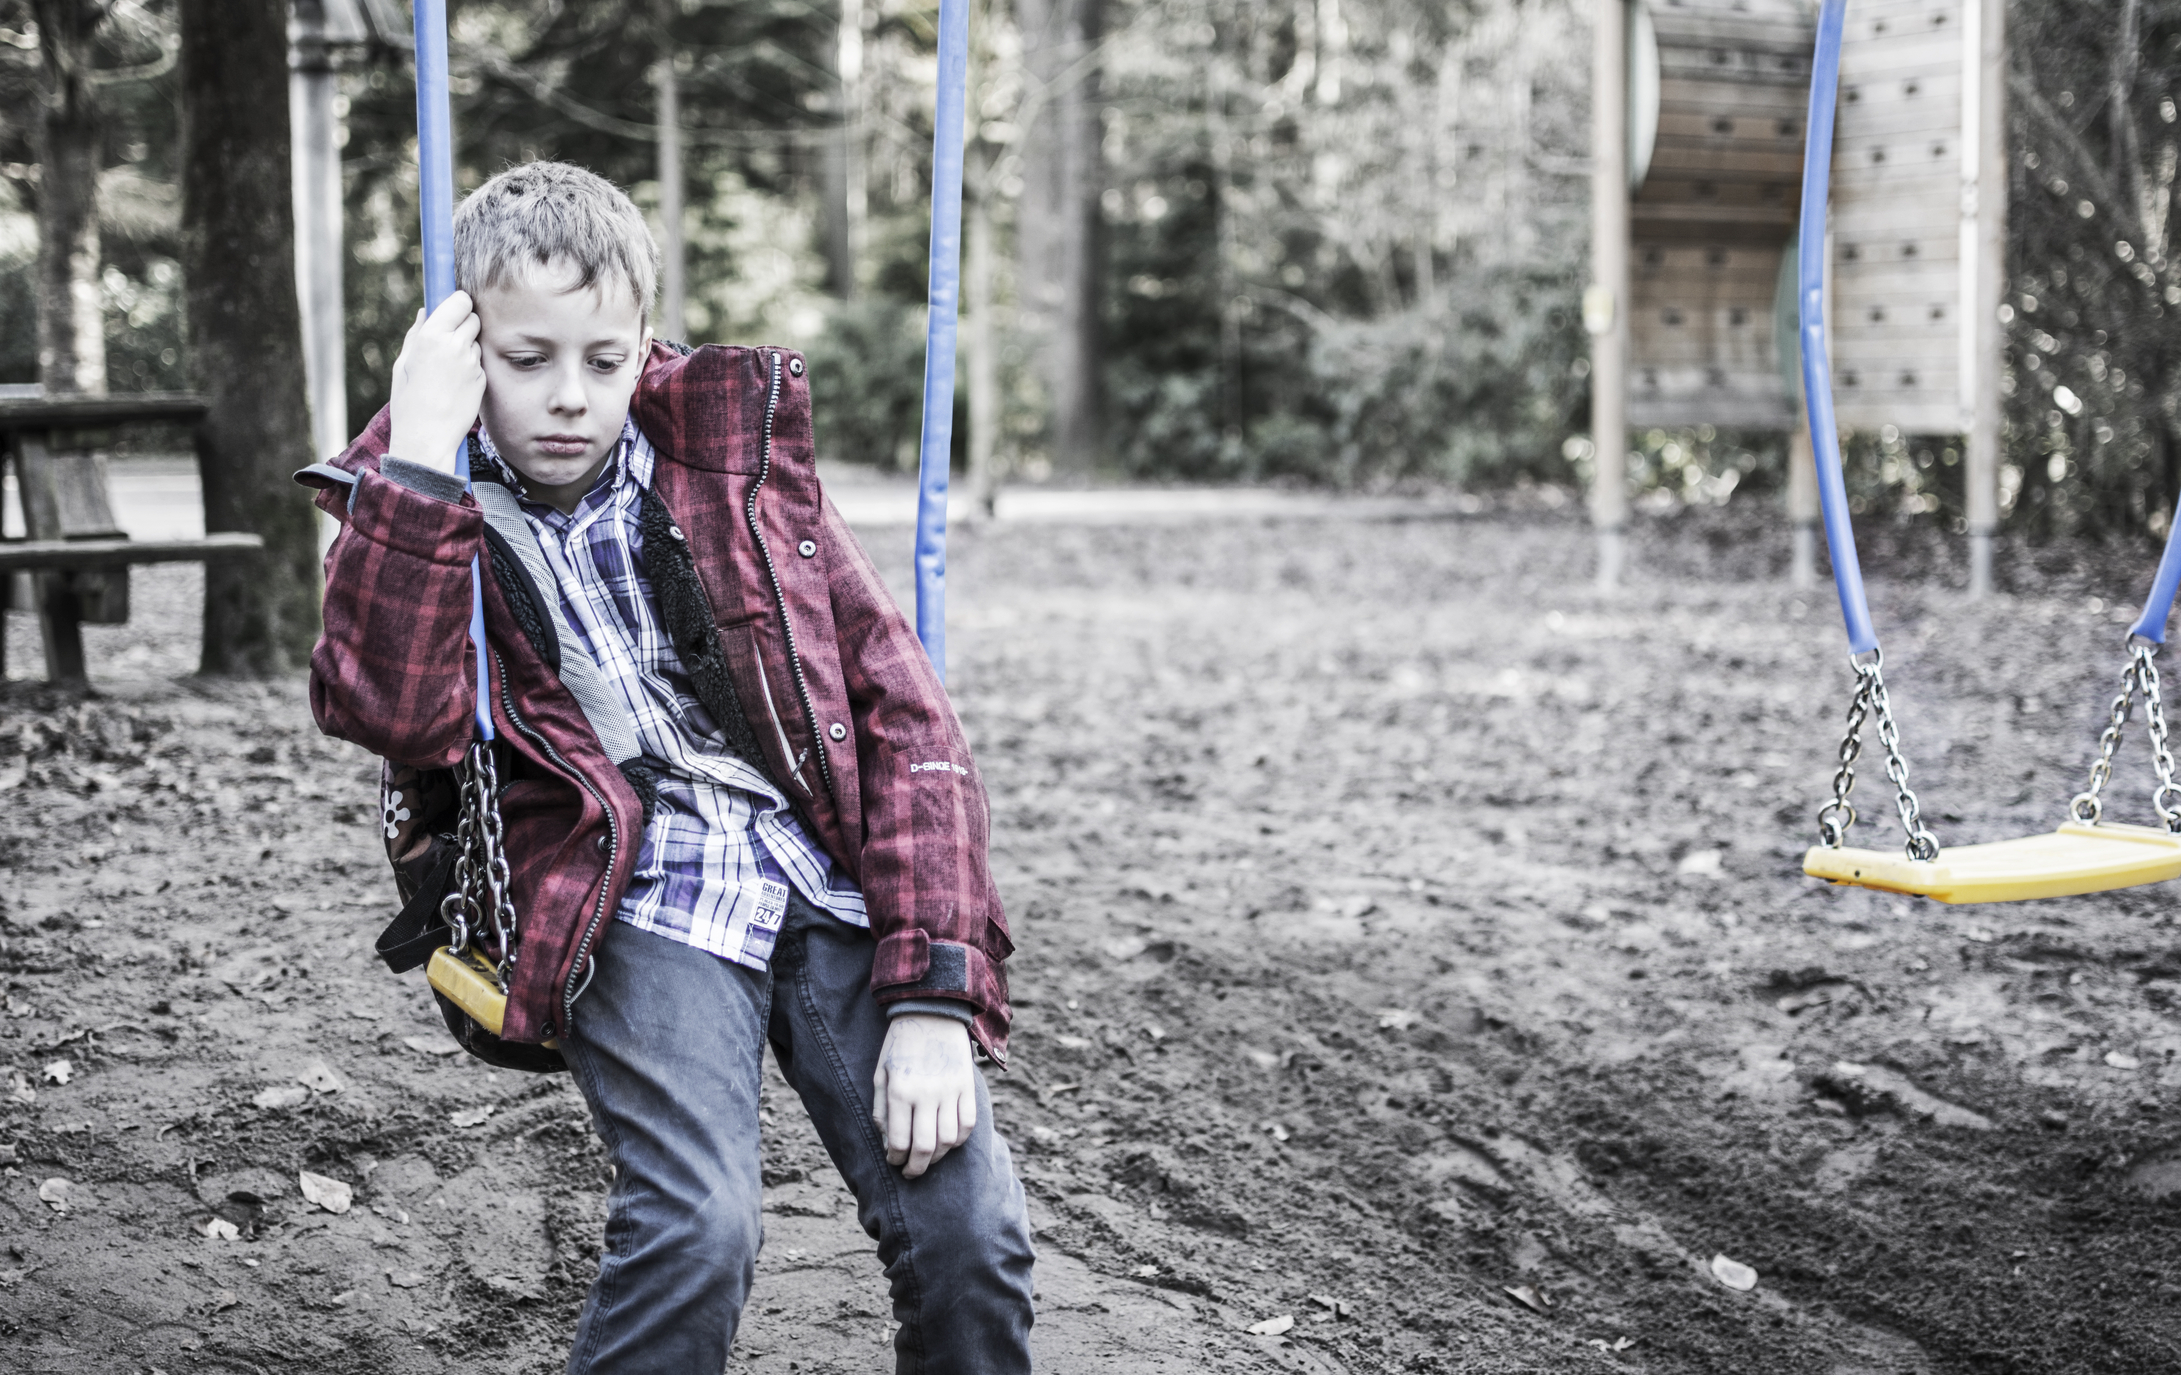 neglected young boy on a swing